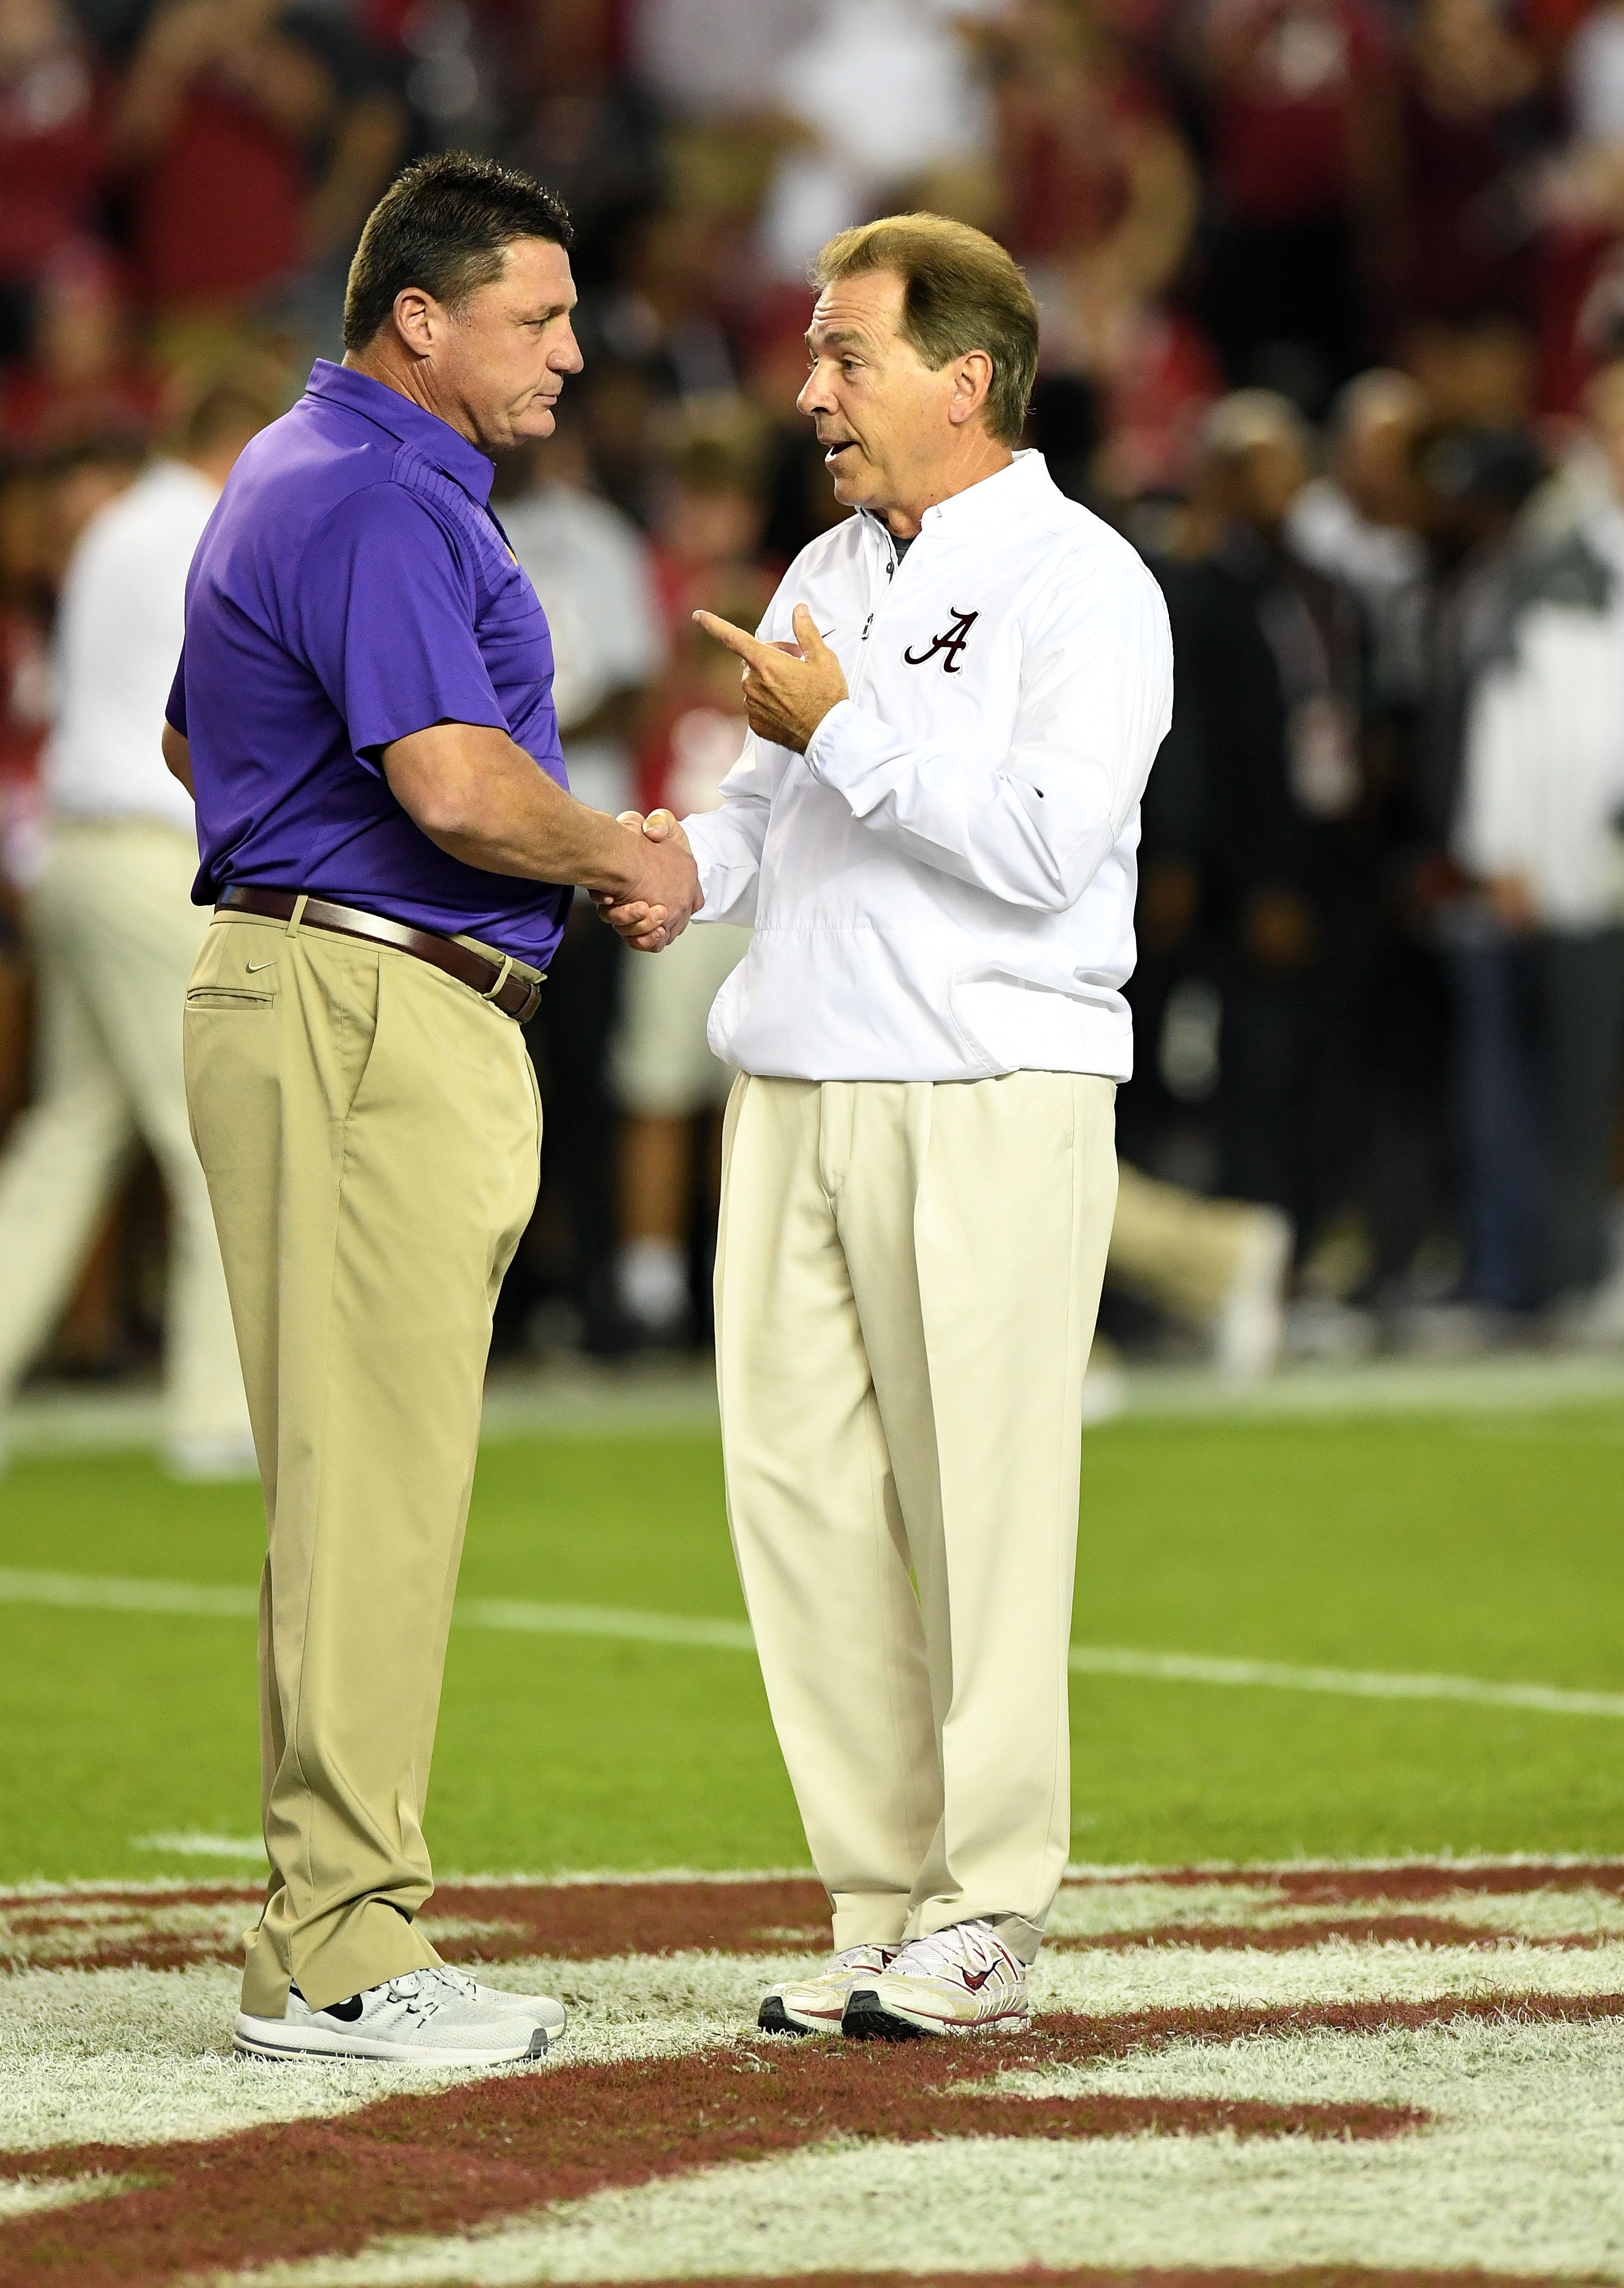 Few expected Alabama-LSU to be *ALABAMA-LSU* in 2018, yet here we are